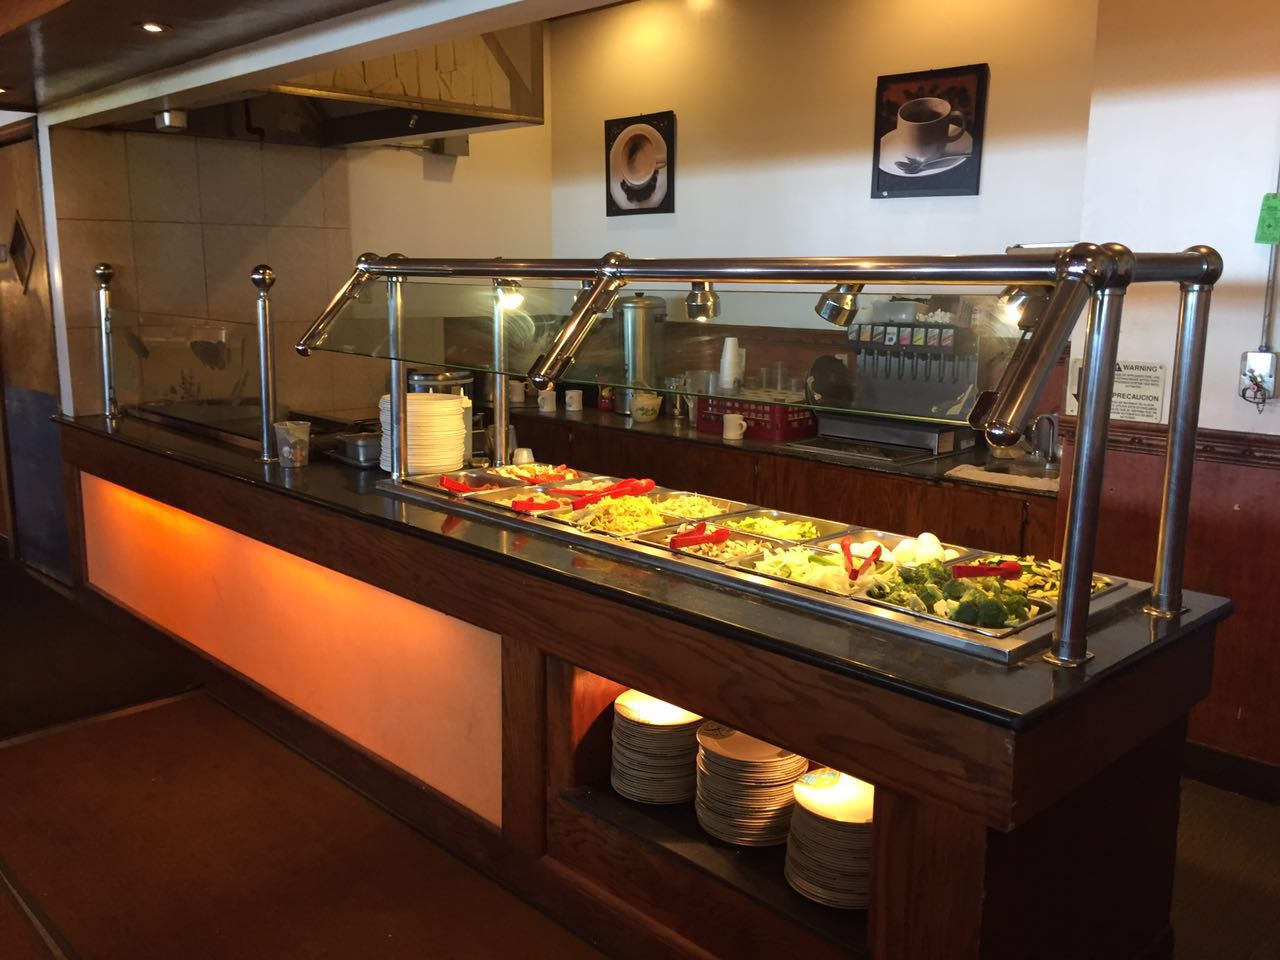 Incredible Kumo Buffet Sushi Seafood Parma Cleveland Oh 44134 Home Interior And Landscaping Oversignezvosmurscom